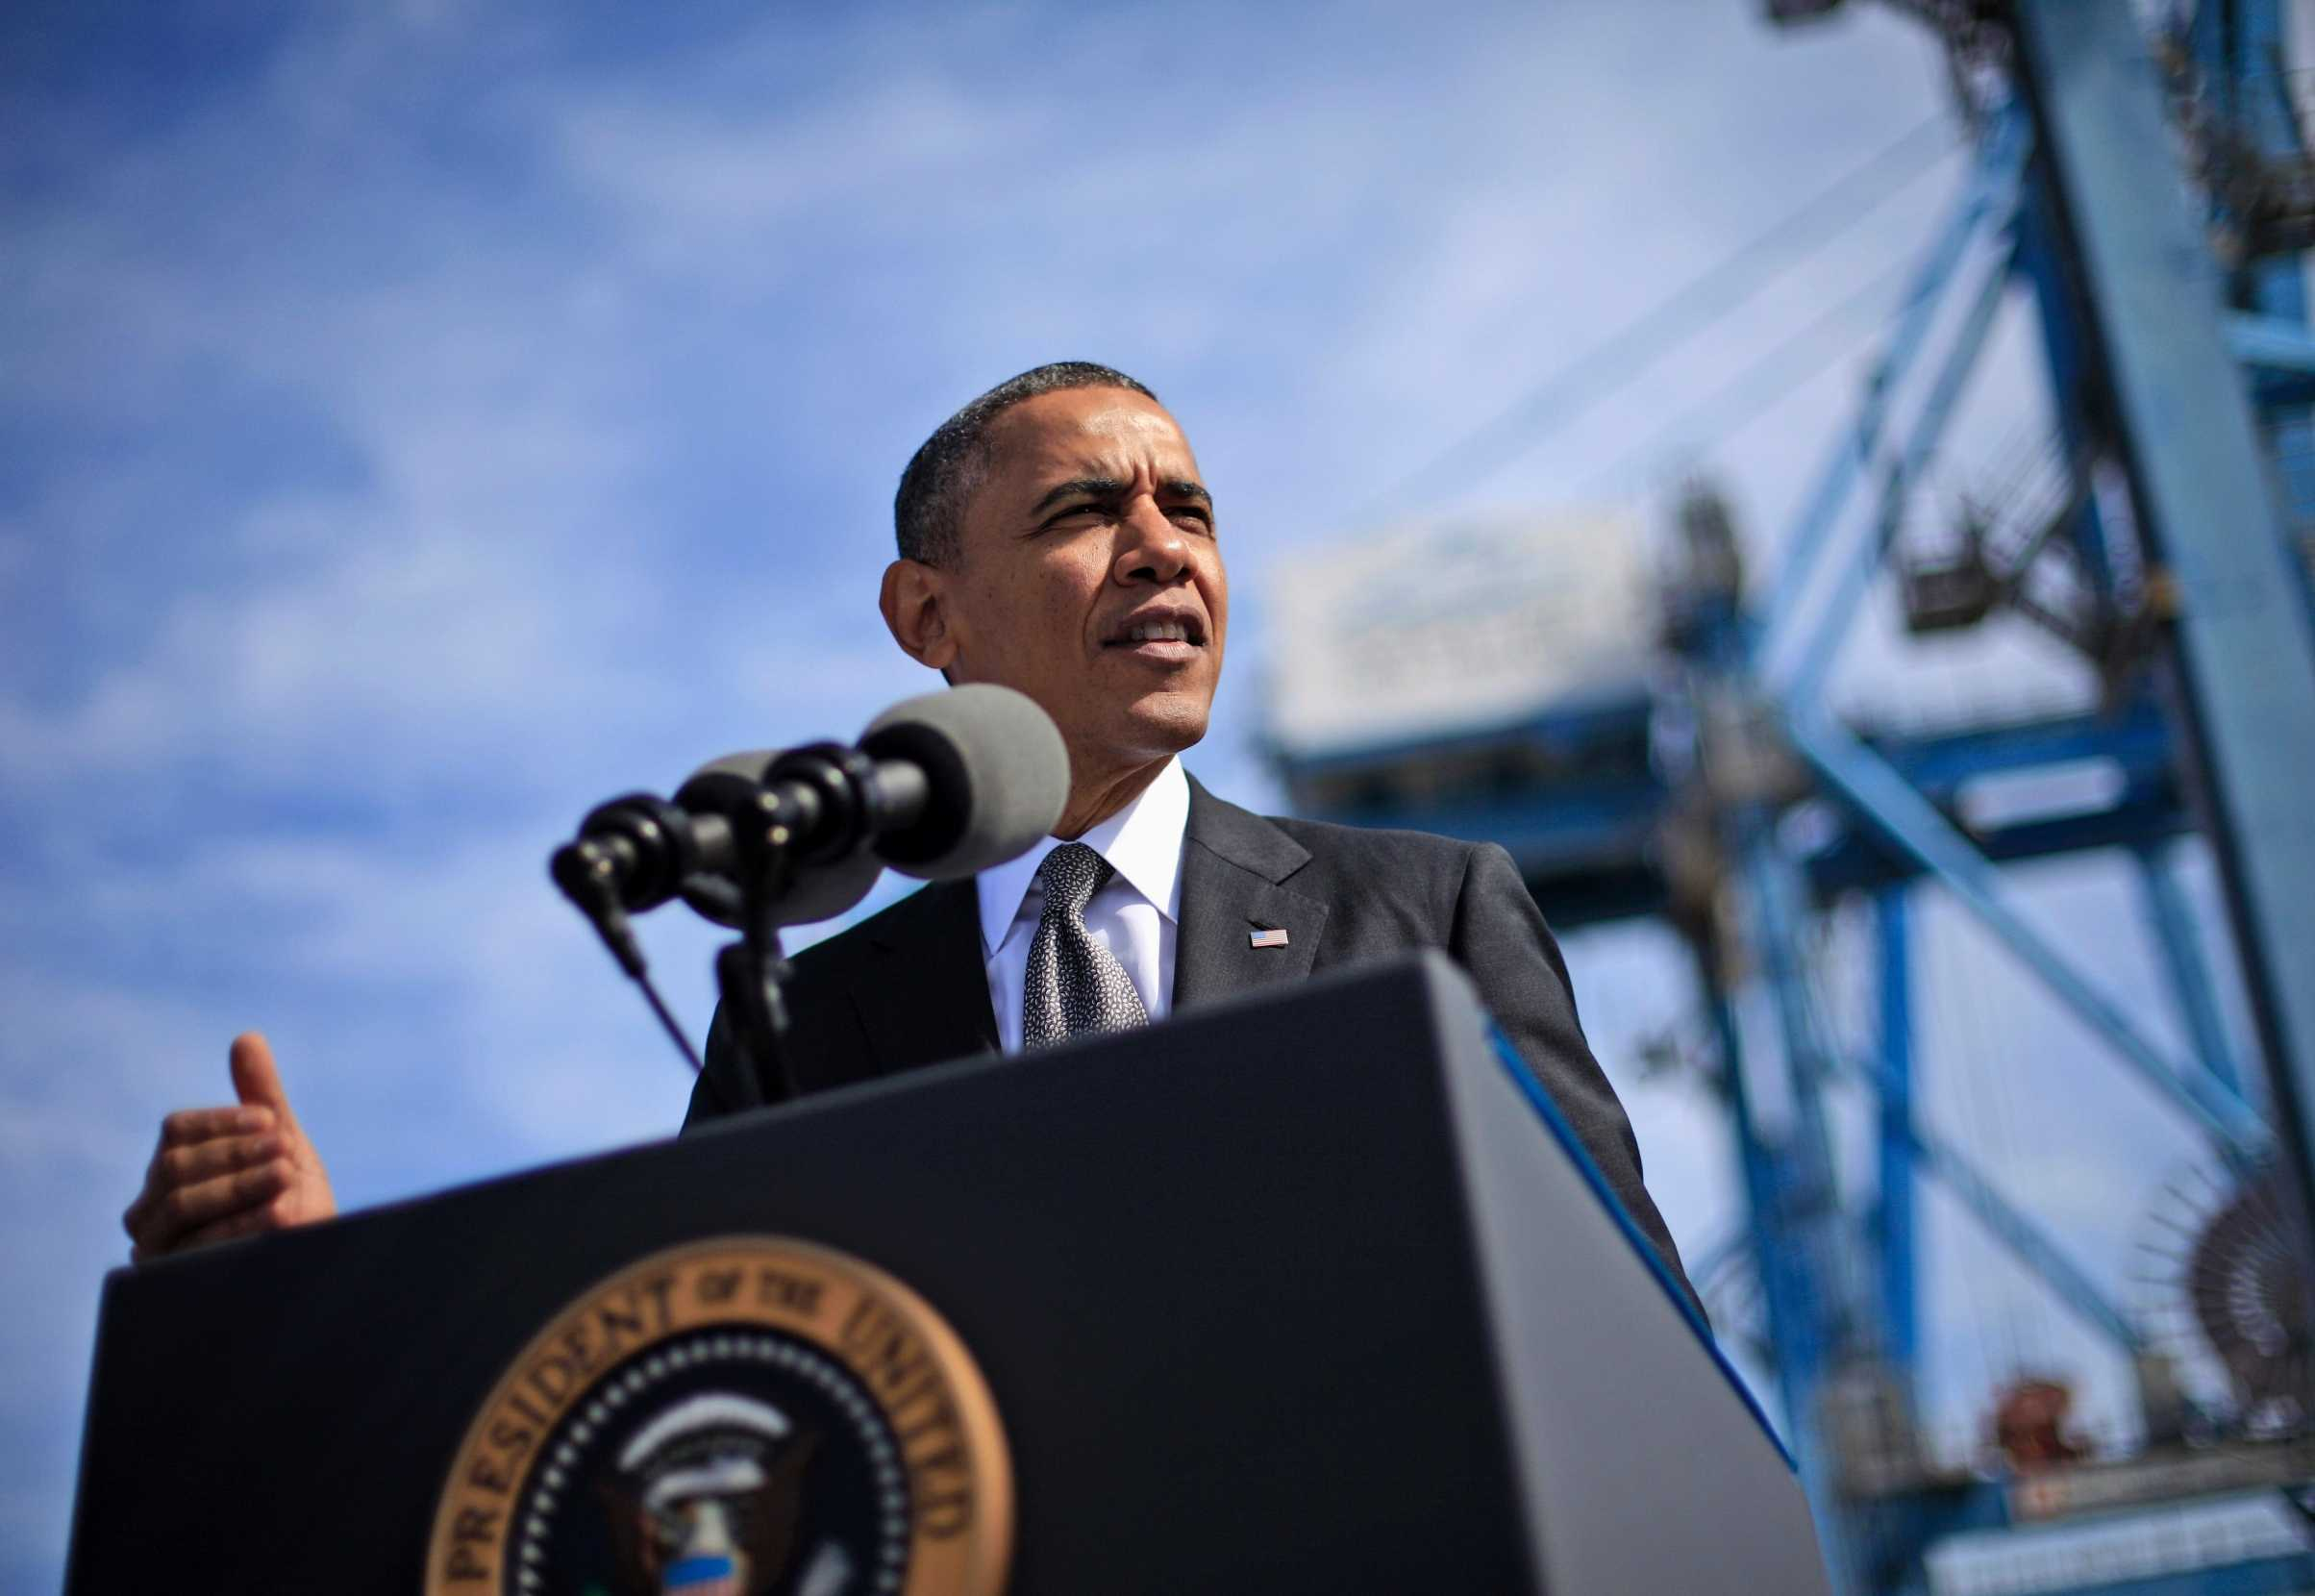 President Barack Obama spoke about the economy at the Port of New Orleans this past Friday. Obama traveled to the Gulf Coast region to make a case that more exports lead to more jobs.